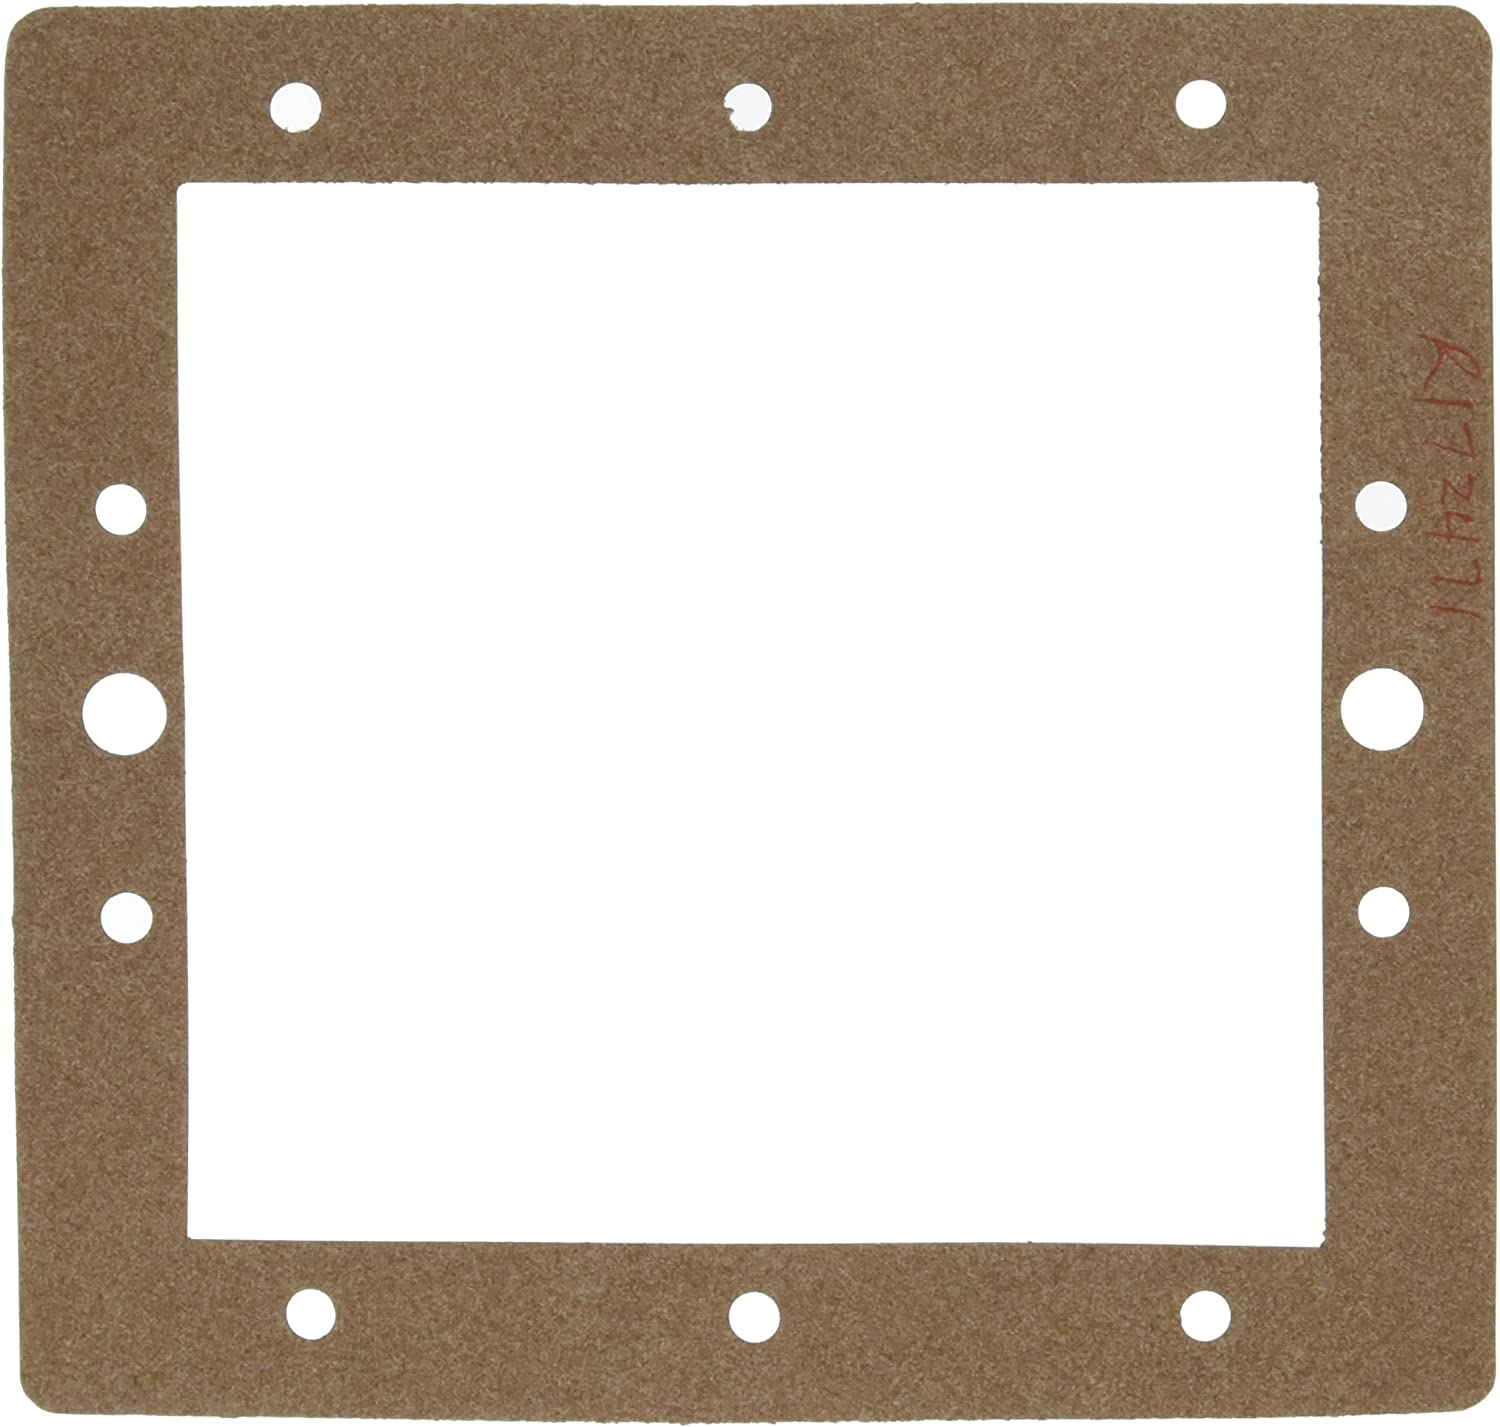 Pentair R172471 Front 4 years warranty Face Plate Replacement Seri Gasket Dynamic Ultra-Cheap Deals